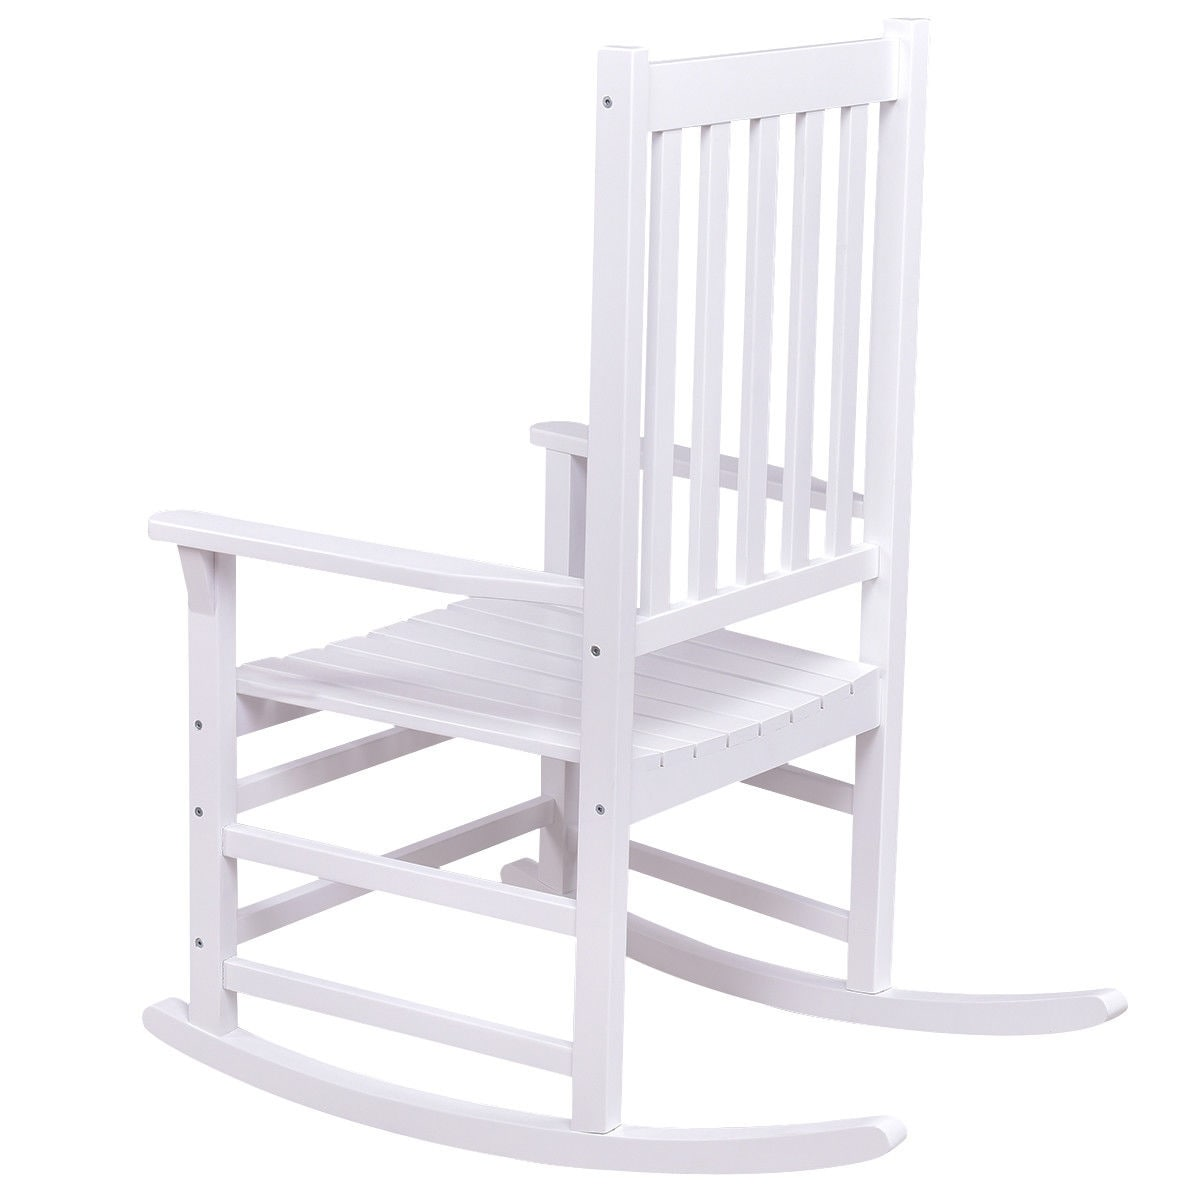 Shop Costway Solid Wood Rocking Chair Rocker Porch Indoor Outdoor Patio  Furniture White   Free Shipping Today   Overstock.com   21104145